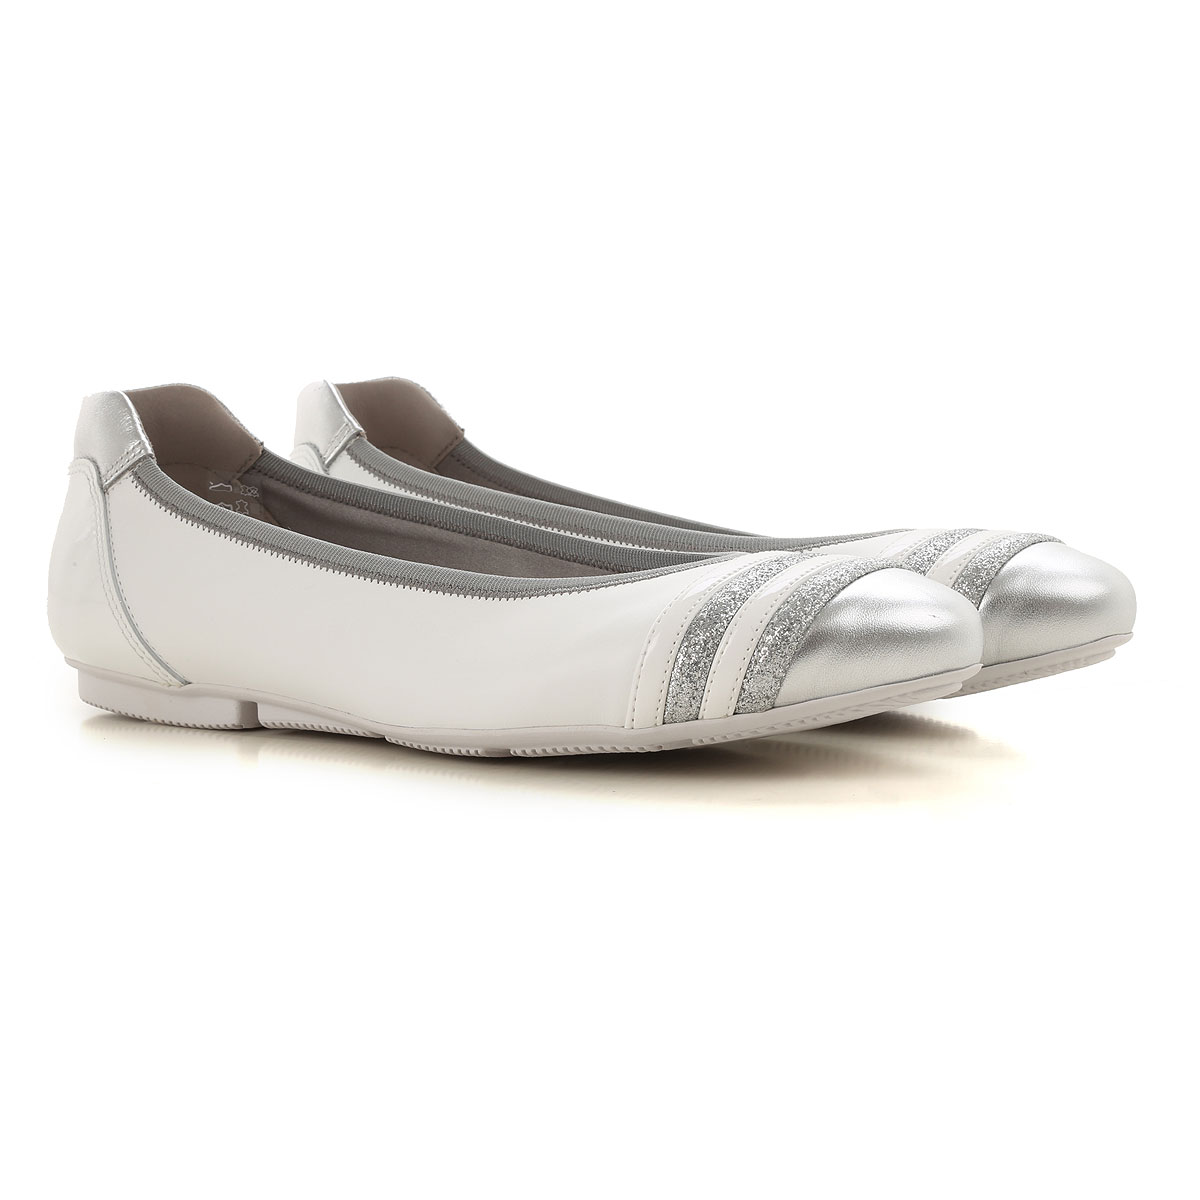 Hogan Ballet Flats Ballerina Shoes for Women On Sale, White, Leather, 2019, 5.5 6 6.5 8.5